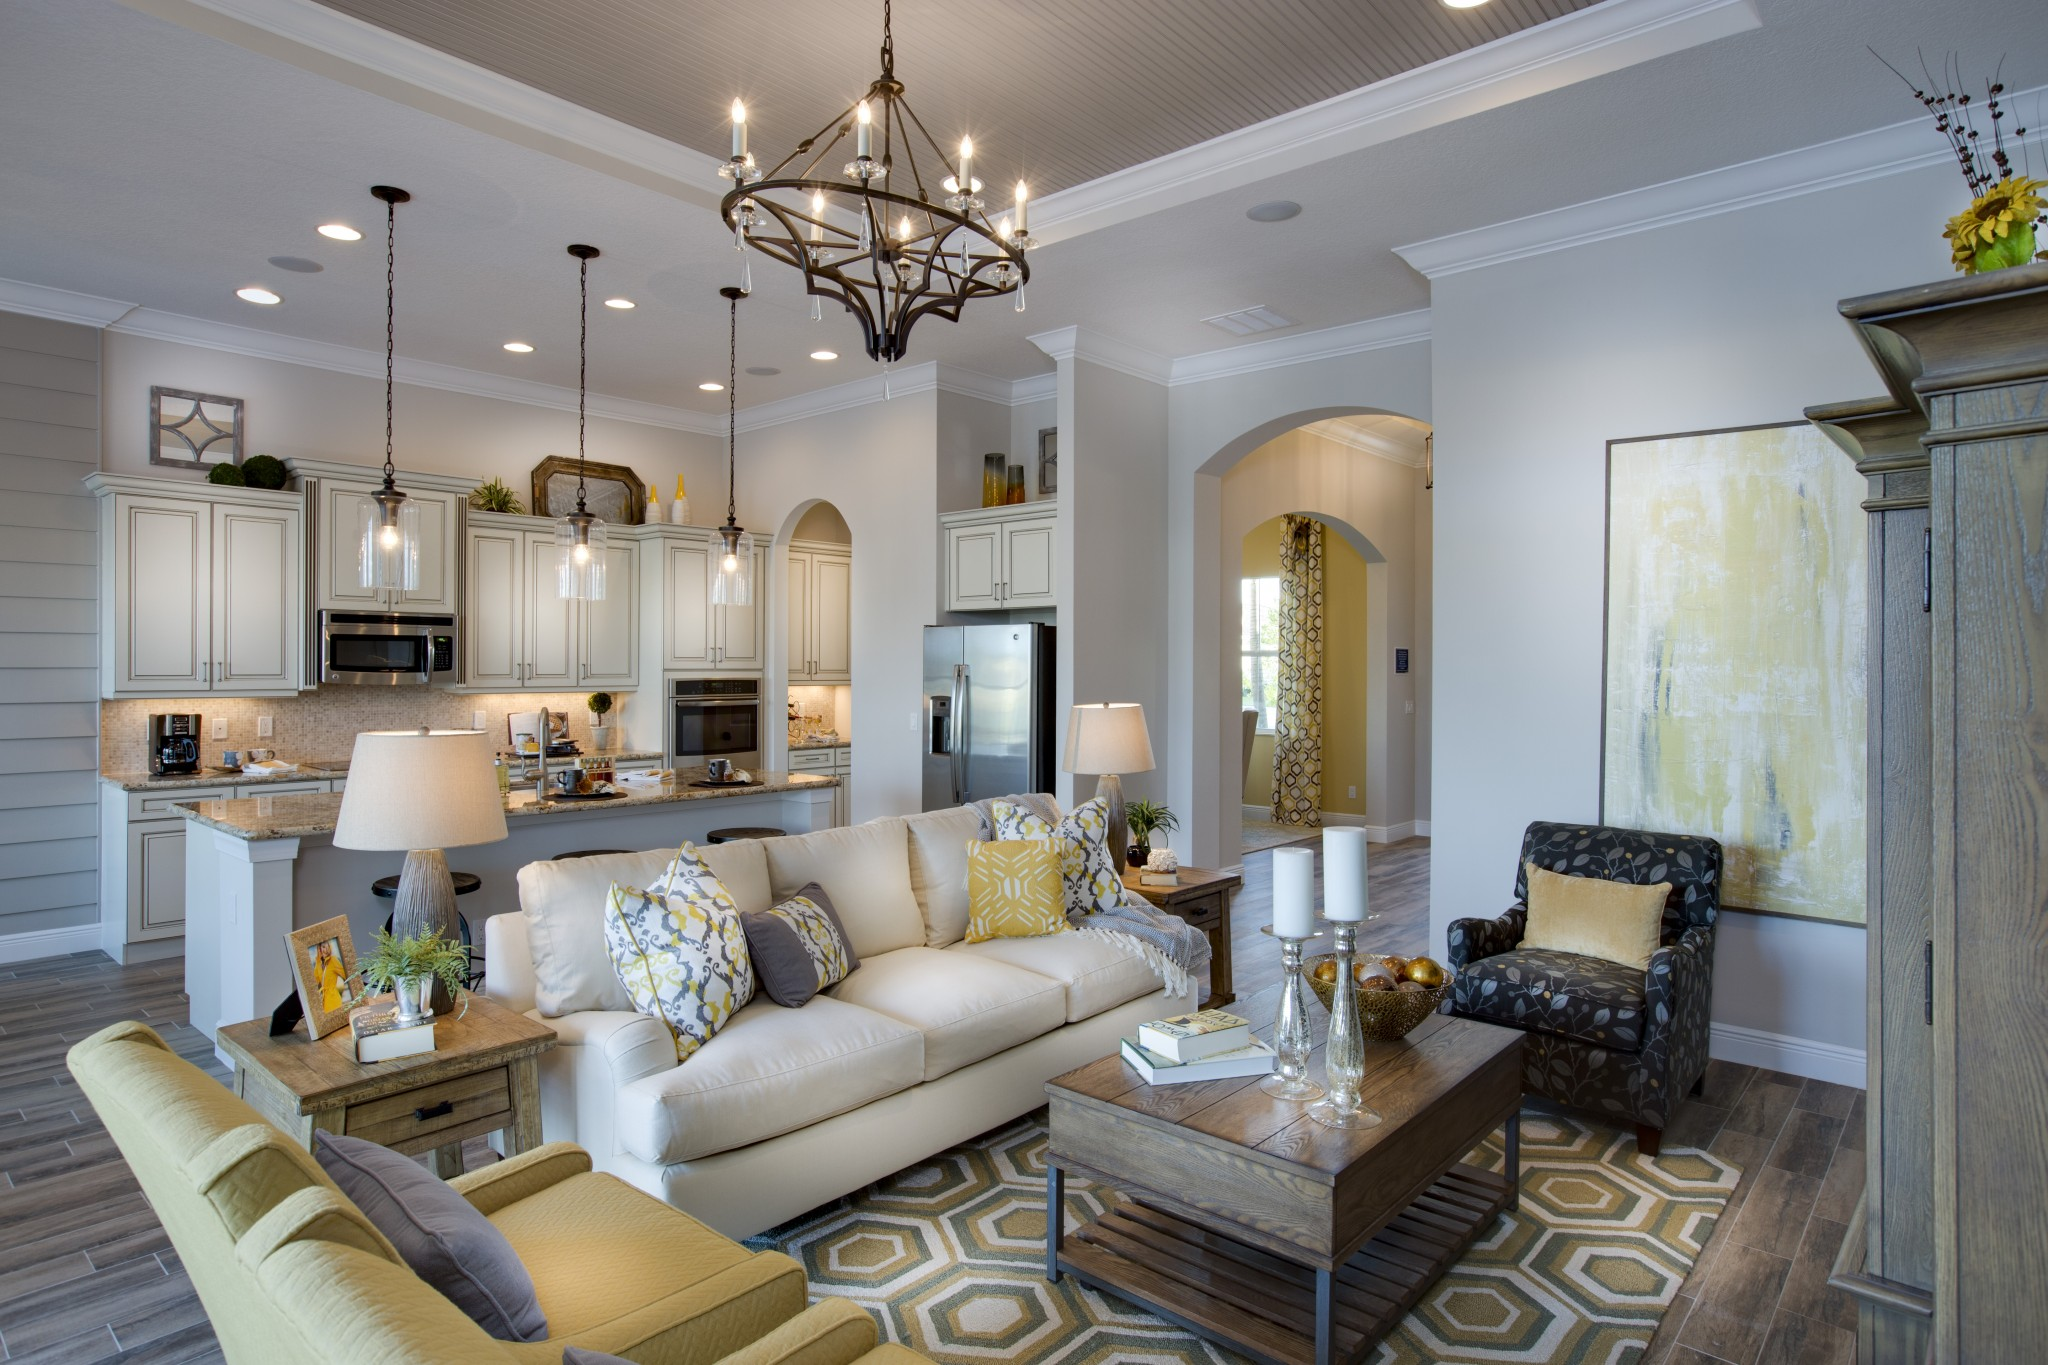 Model home decorating designed to the nines model home decor day model homes always - Who decorates model homes image ...